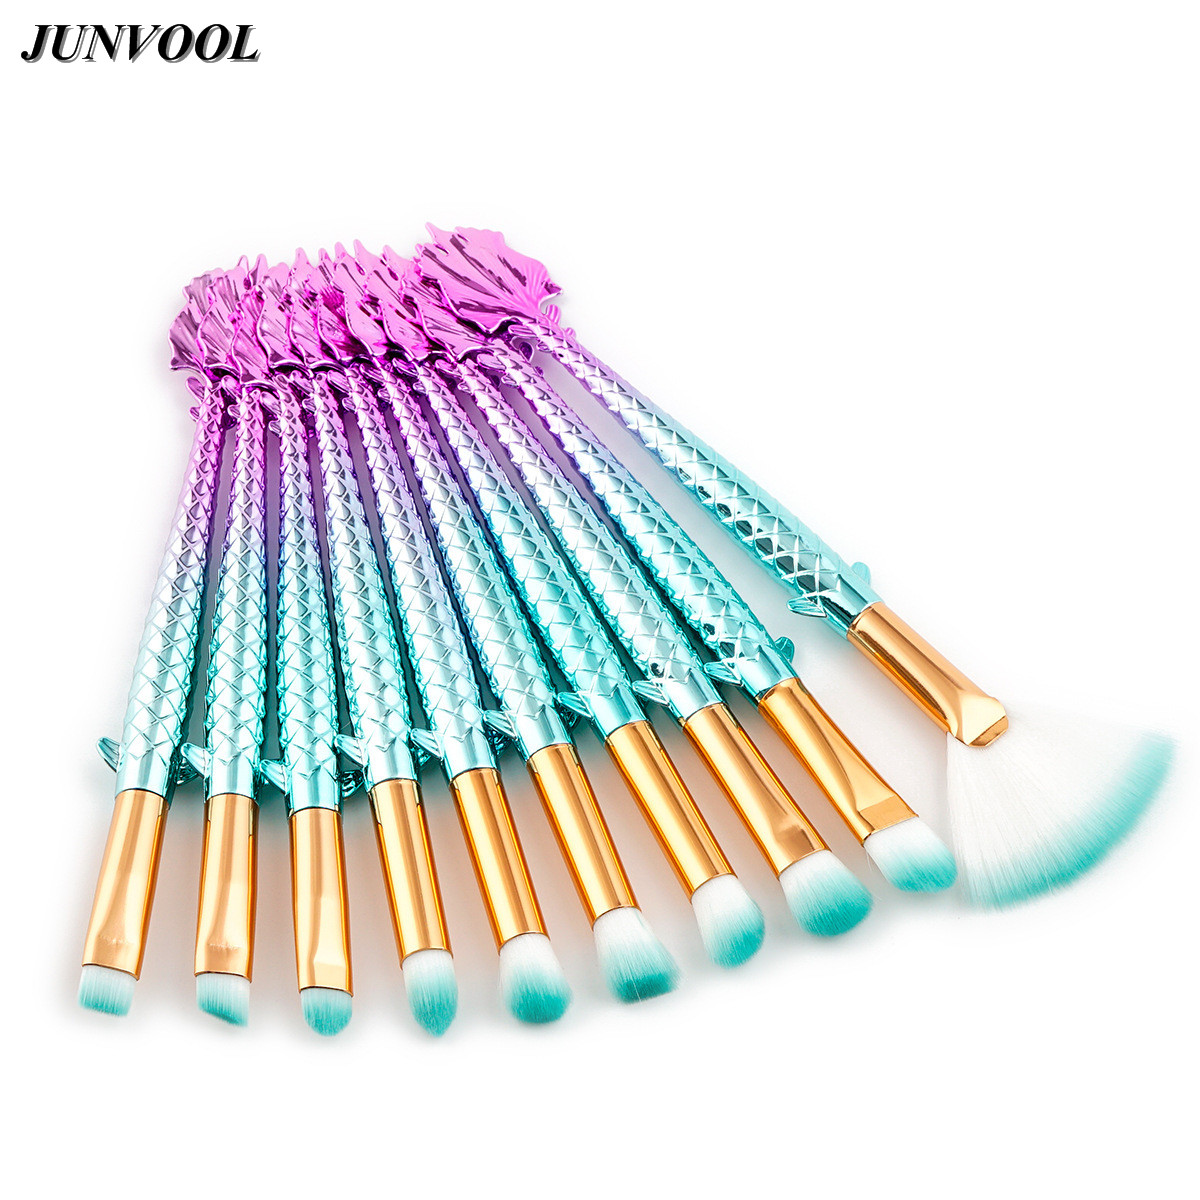 Professional Mermaid Eyes Makeup Brushes Foundation Eyebrow Eyeliner Blush Cosmetic Concealer Fish Tail Fan Make Up Brush Tools 2017 new mermaid makeup brushes foundation eyebrow eyeliner blush cosmetic concealer fish tail make up brushes brush tools lz06